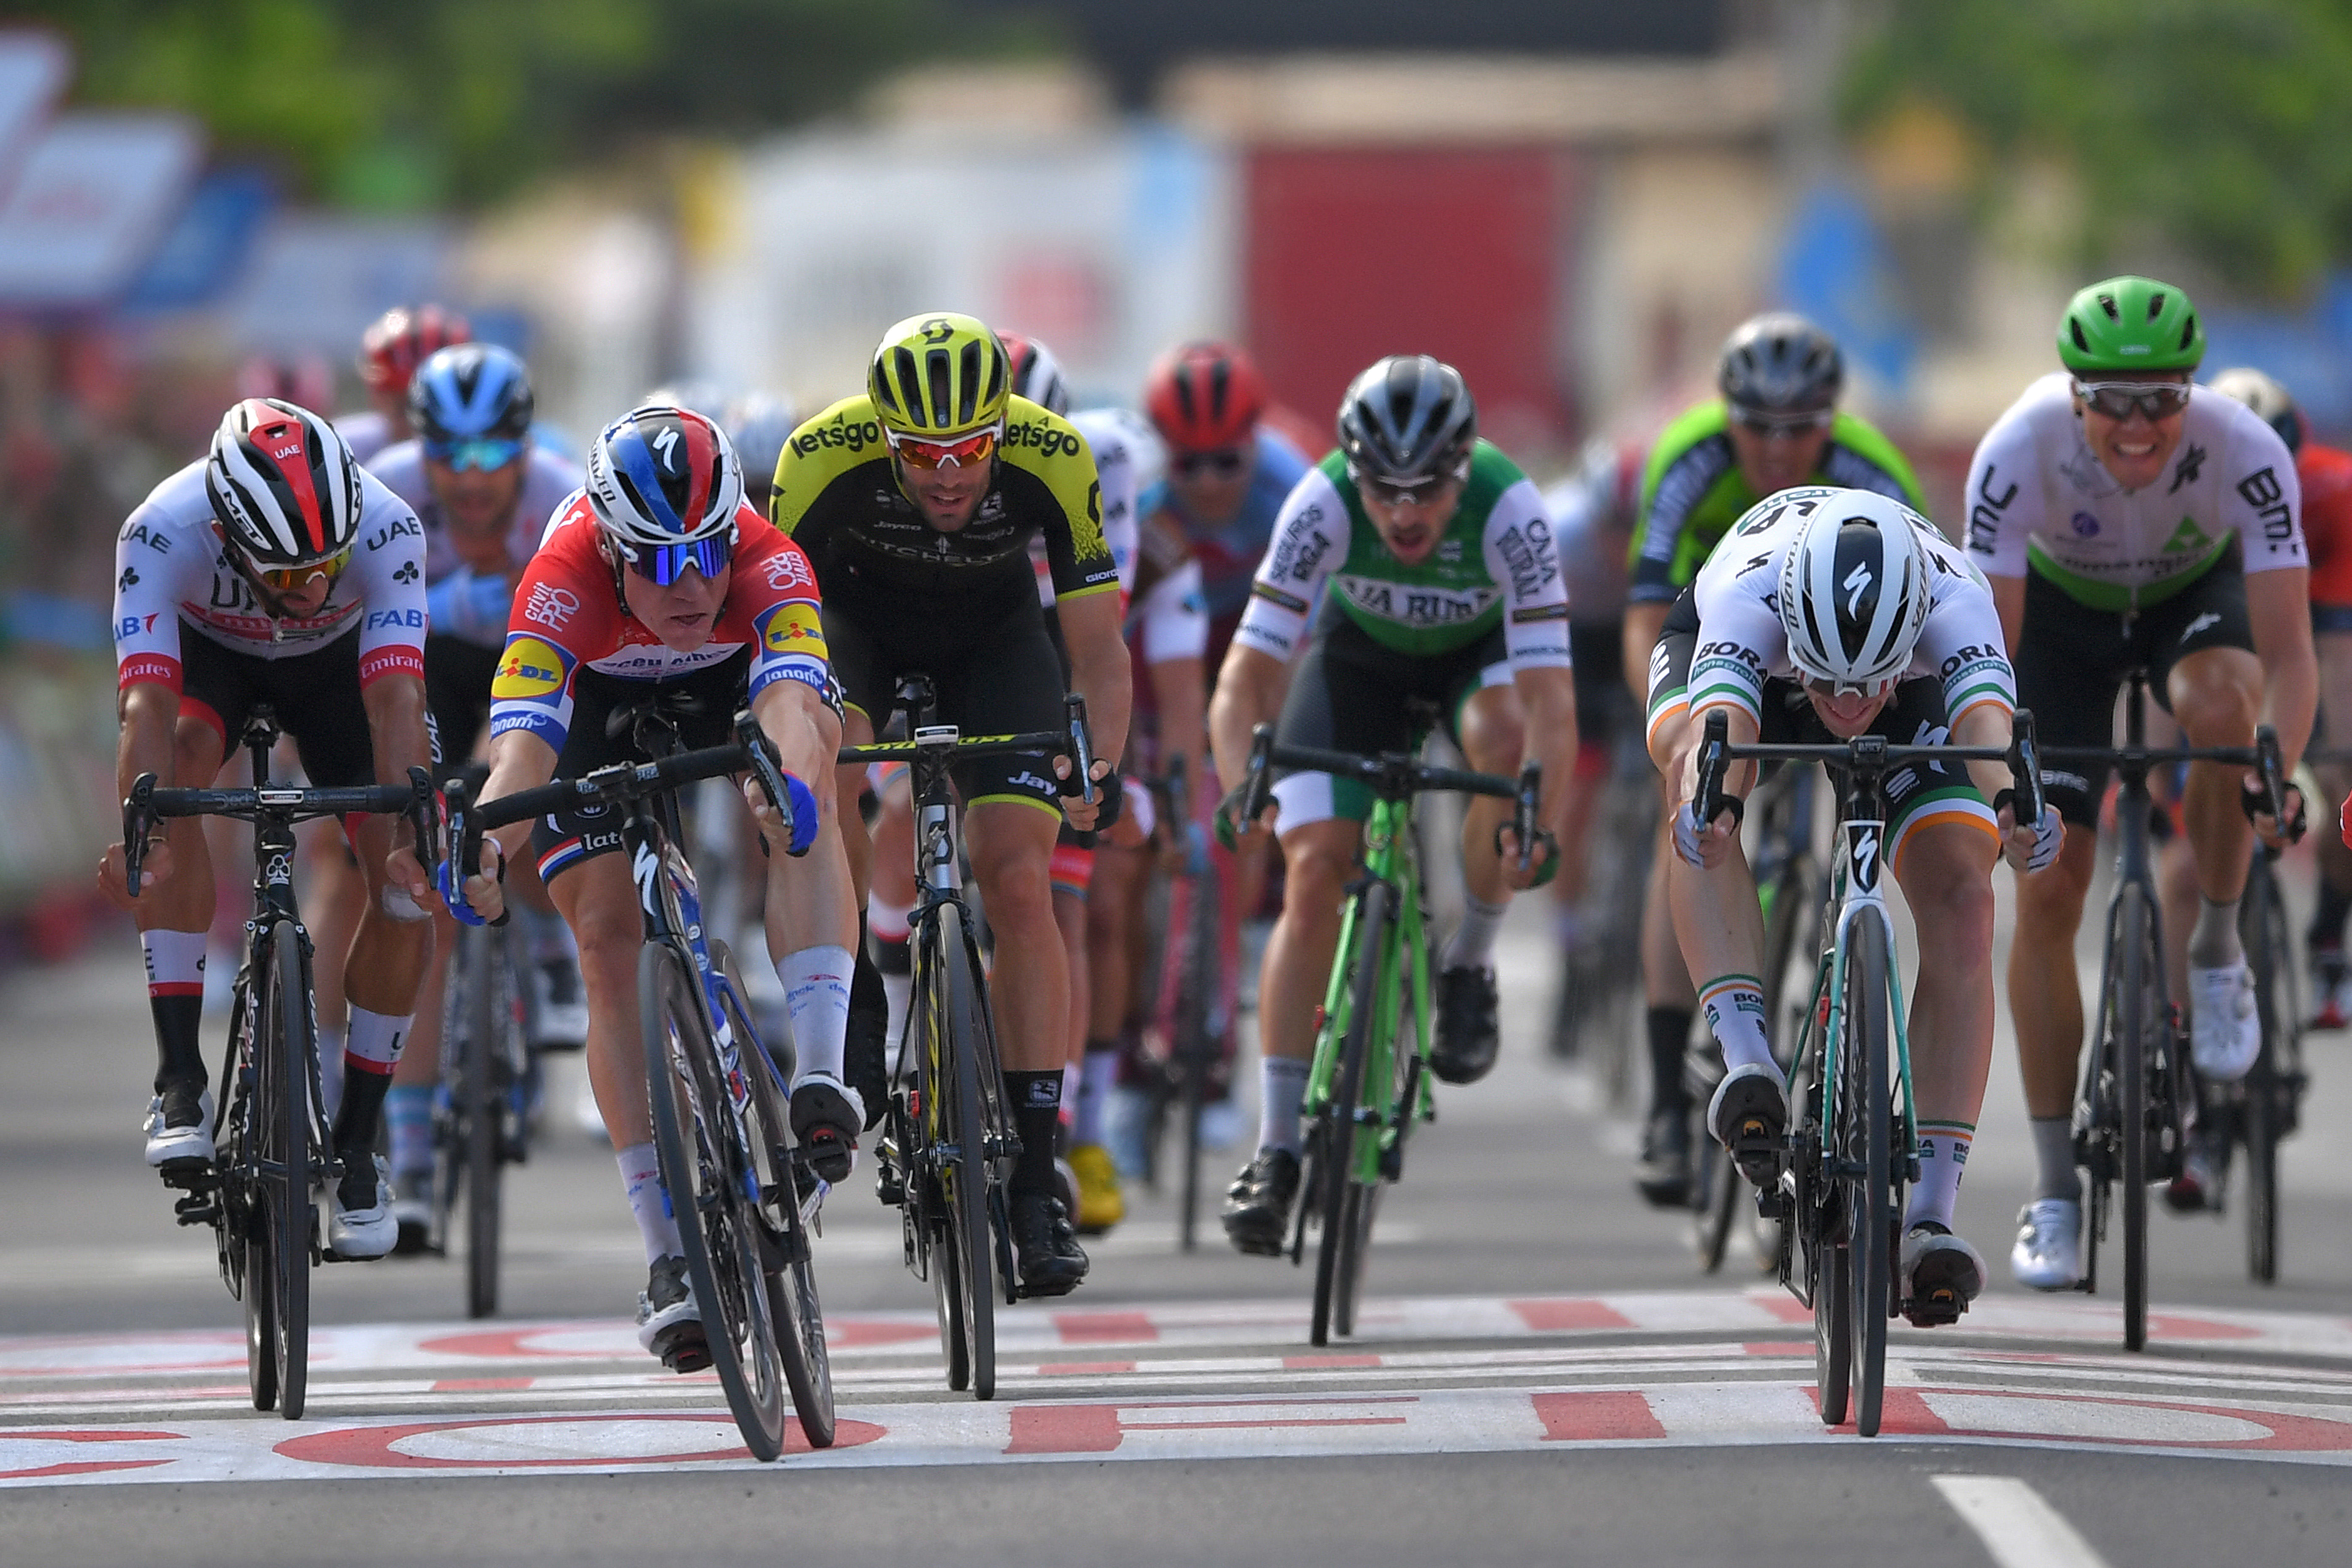 74th Tour of Spain 2019 - Stage 4